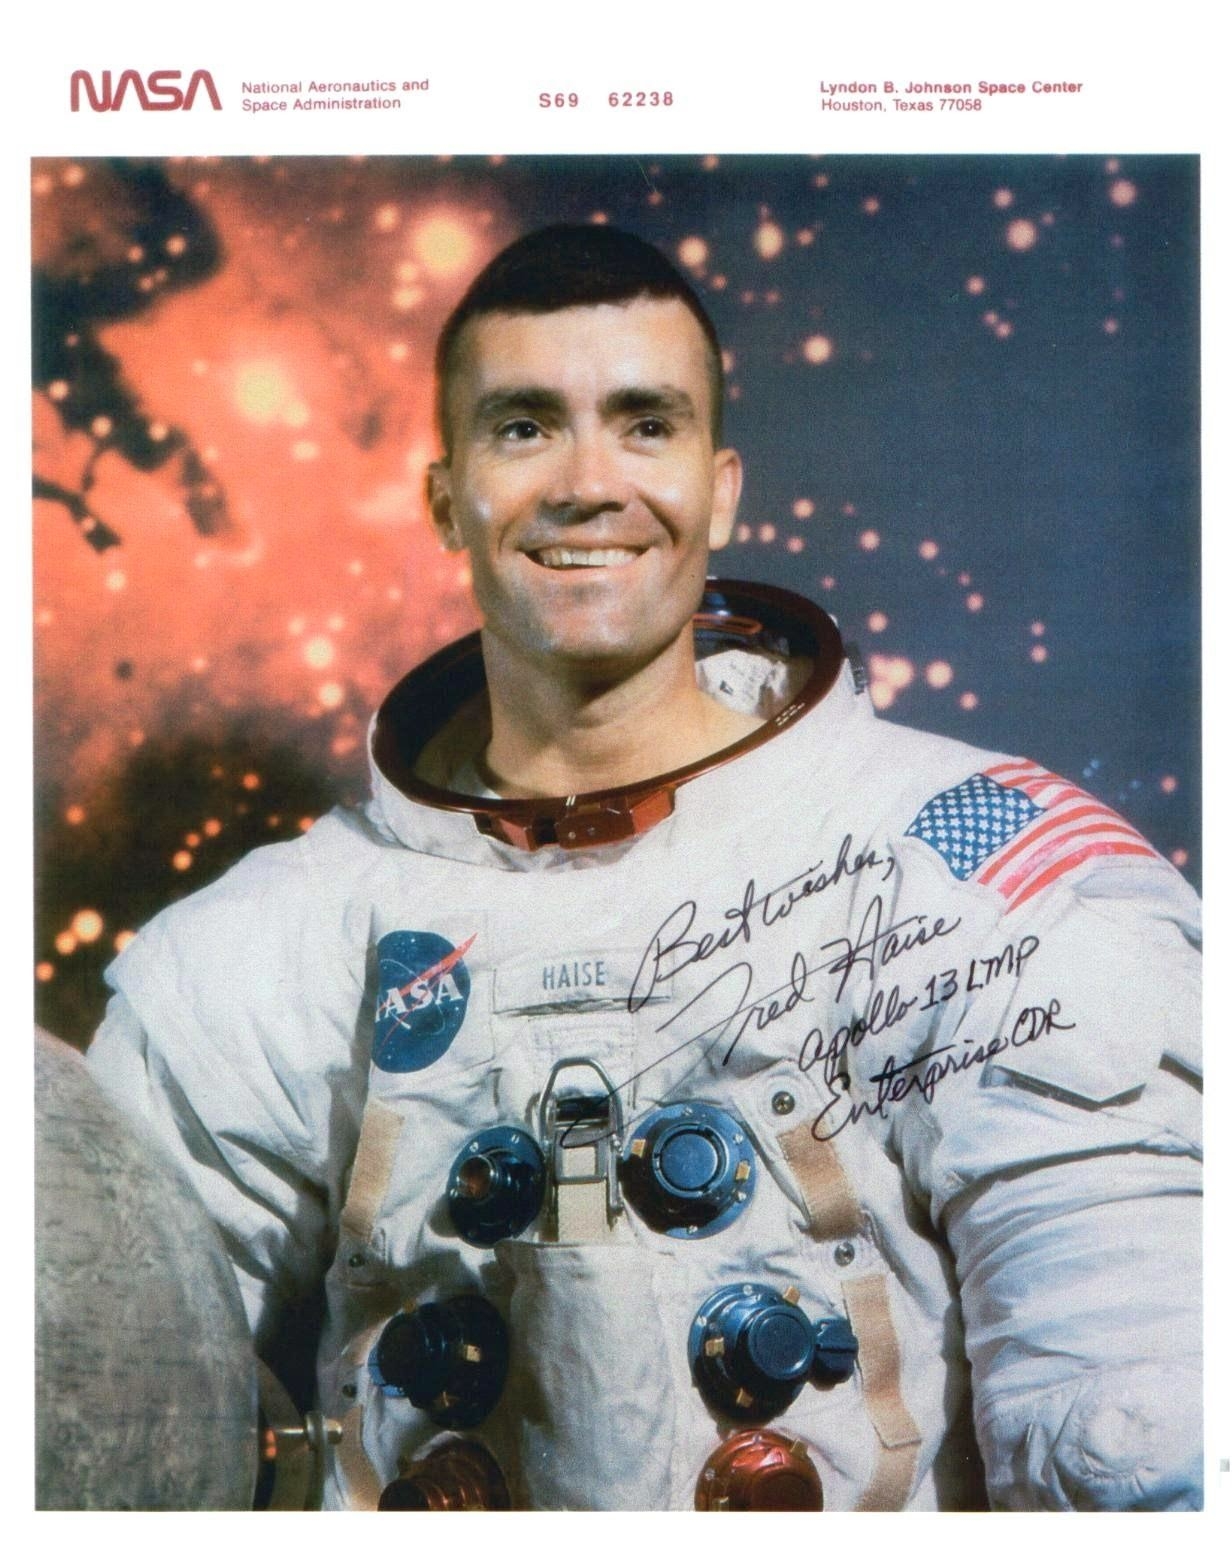 Apollo 13 Quotes Awesome space quotes / souvenirs d'espace: interview de fred haise